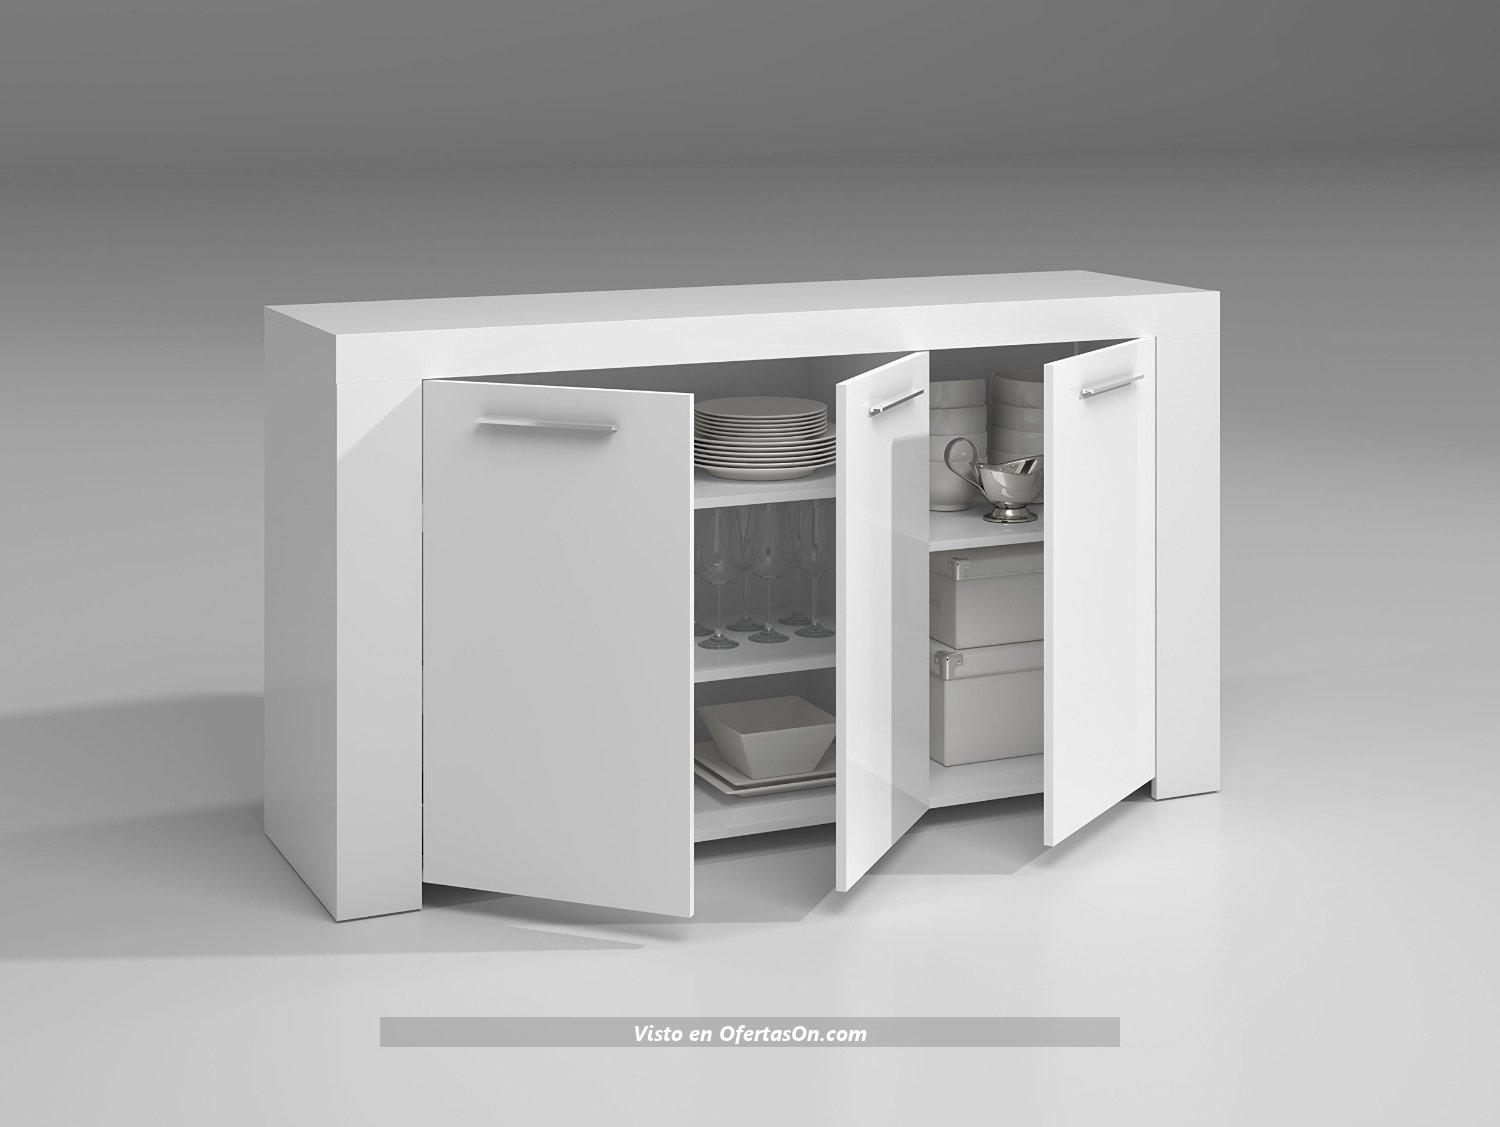 Mueble buffet moderno dise os arquitect nicos for Habitdesign muebles